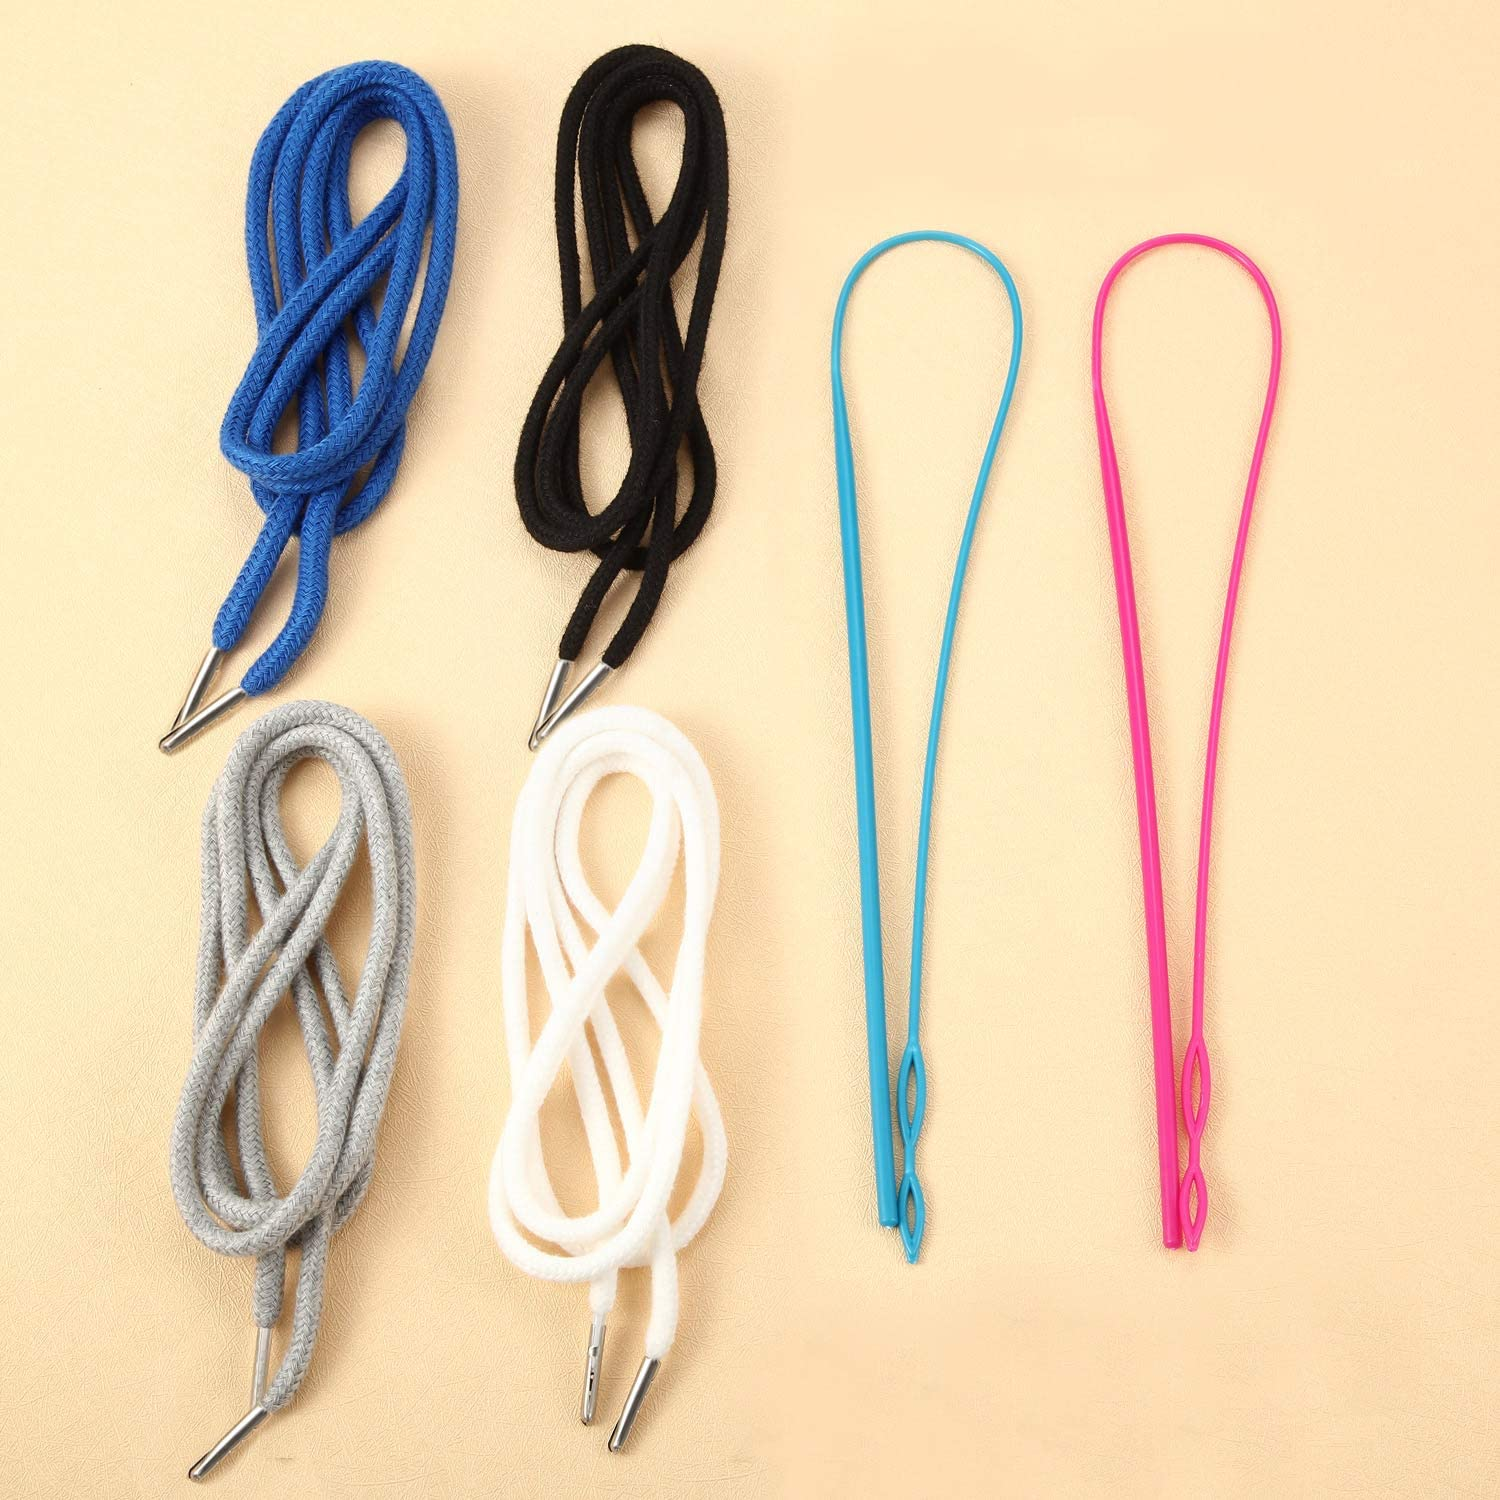 8 Pieces Replacement Drawstrings Universal Drawstrings with 2 Pieces Flexible Drawstring Threader Easy Drawstring Threader for Sweatpants Shorts Hoodies Pants